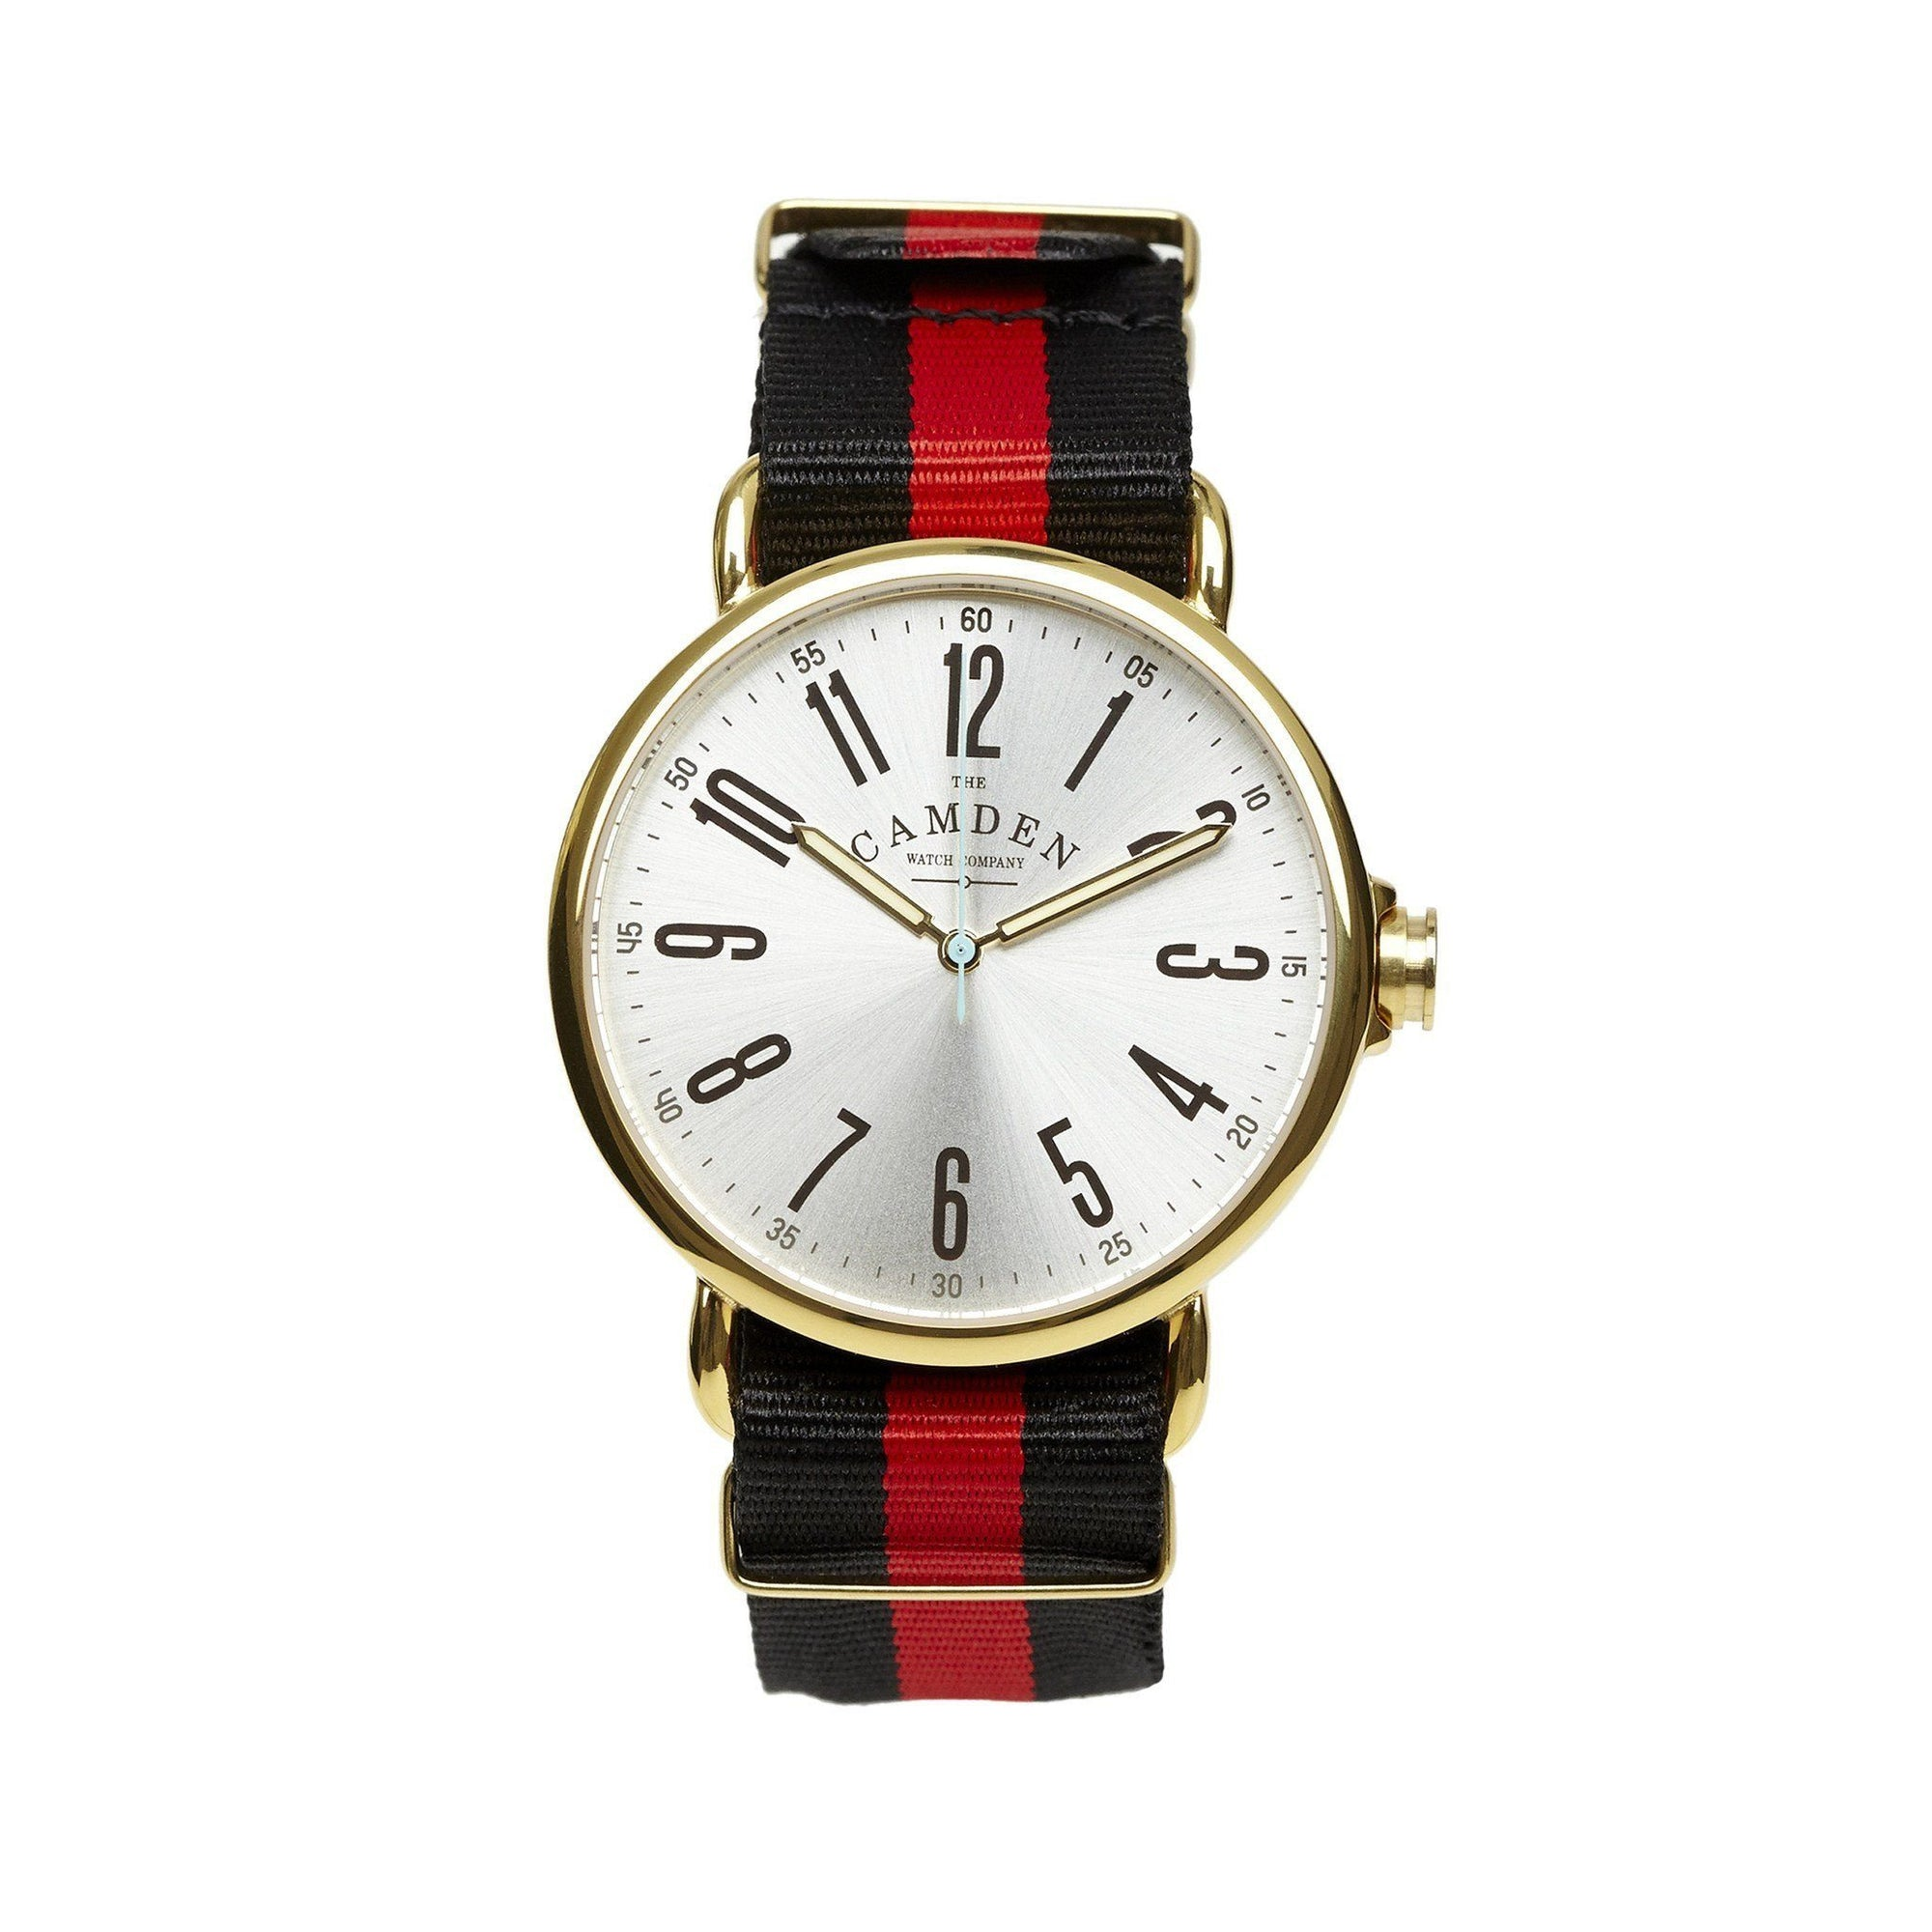 No.88 Classic Gold and Red British Watch